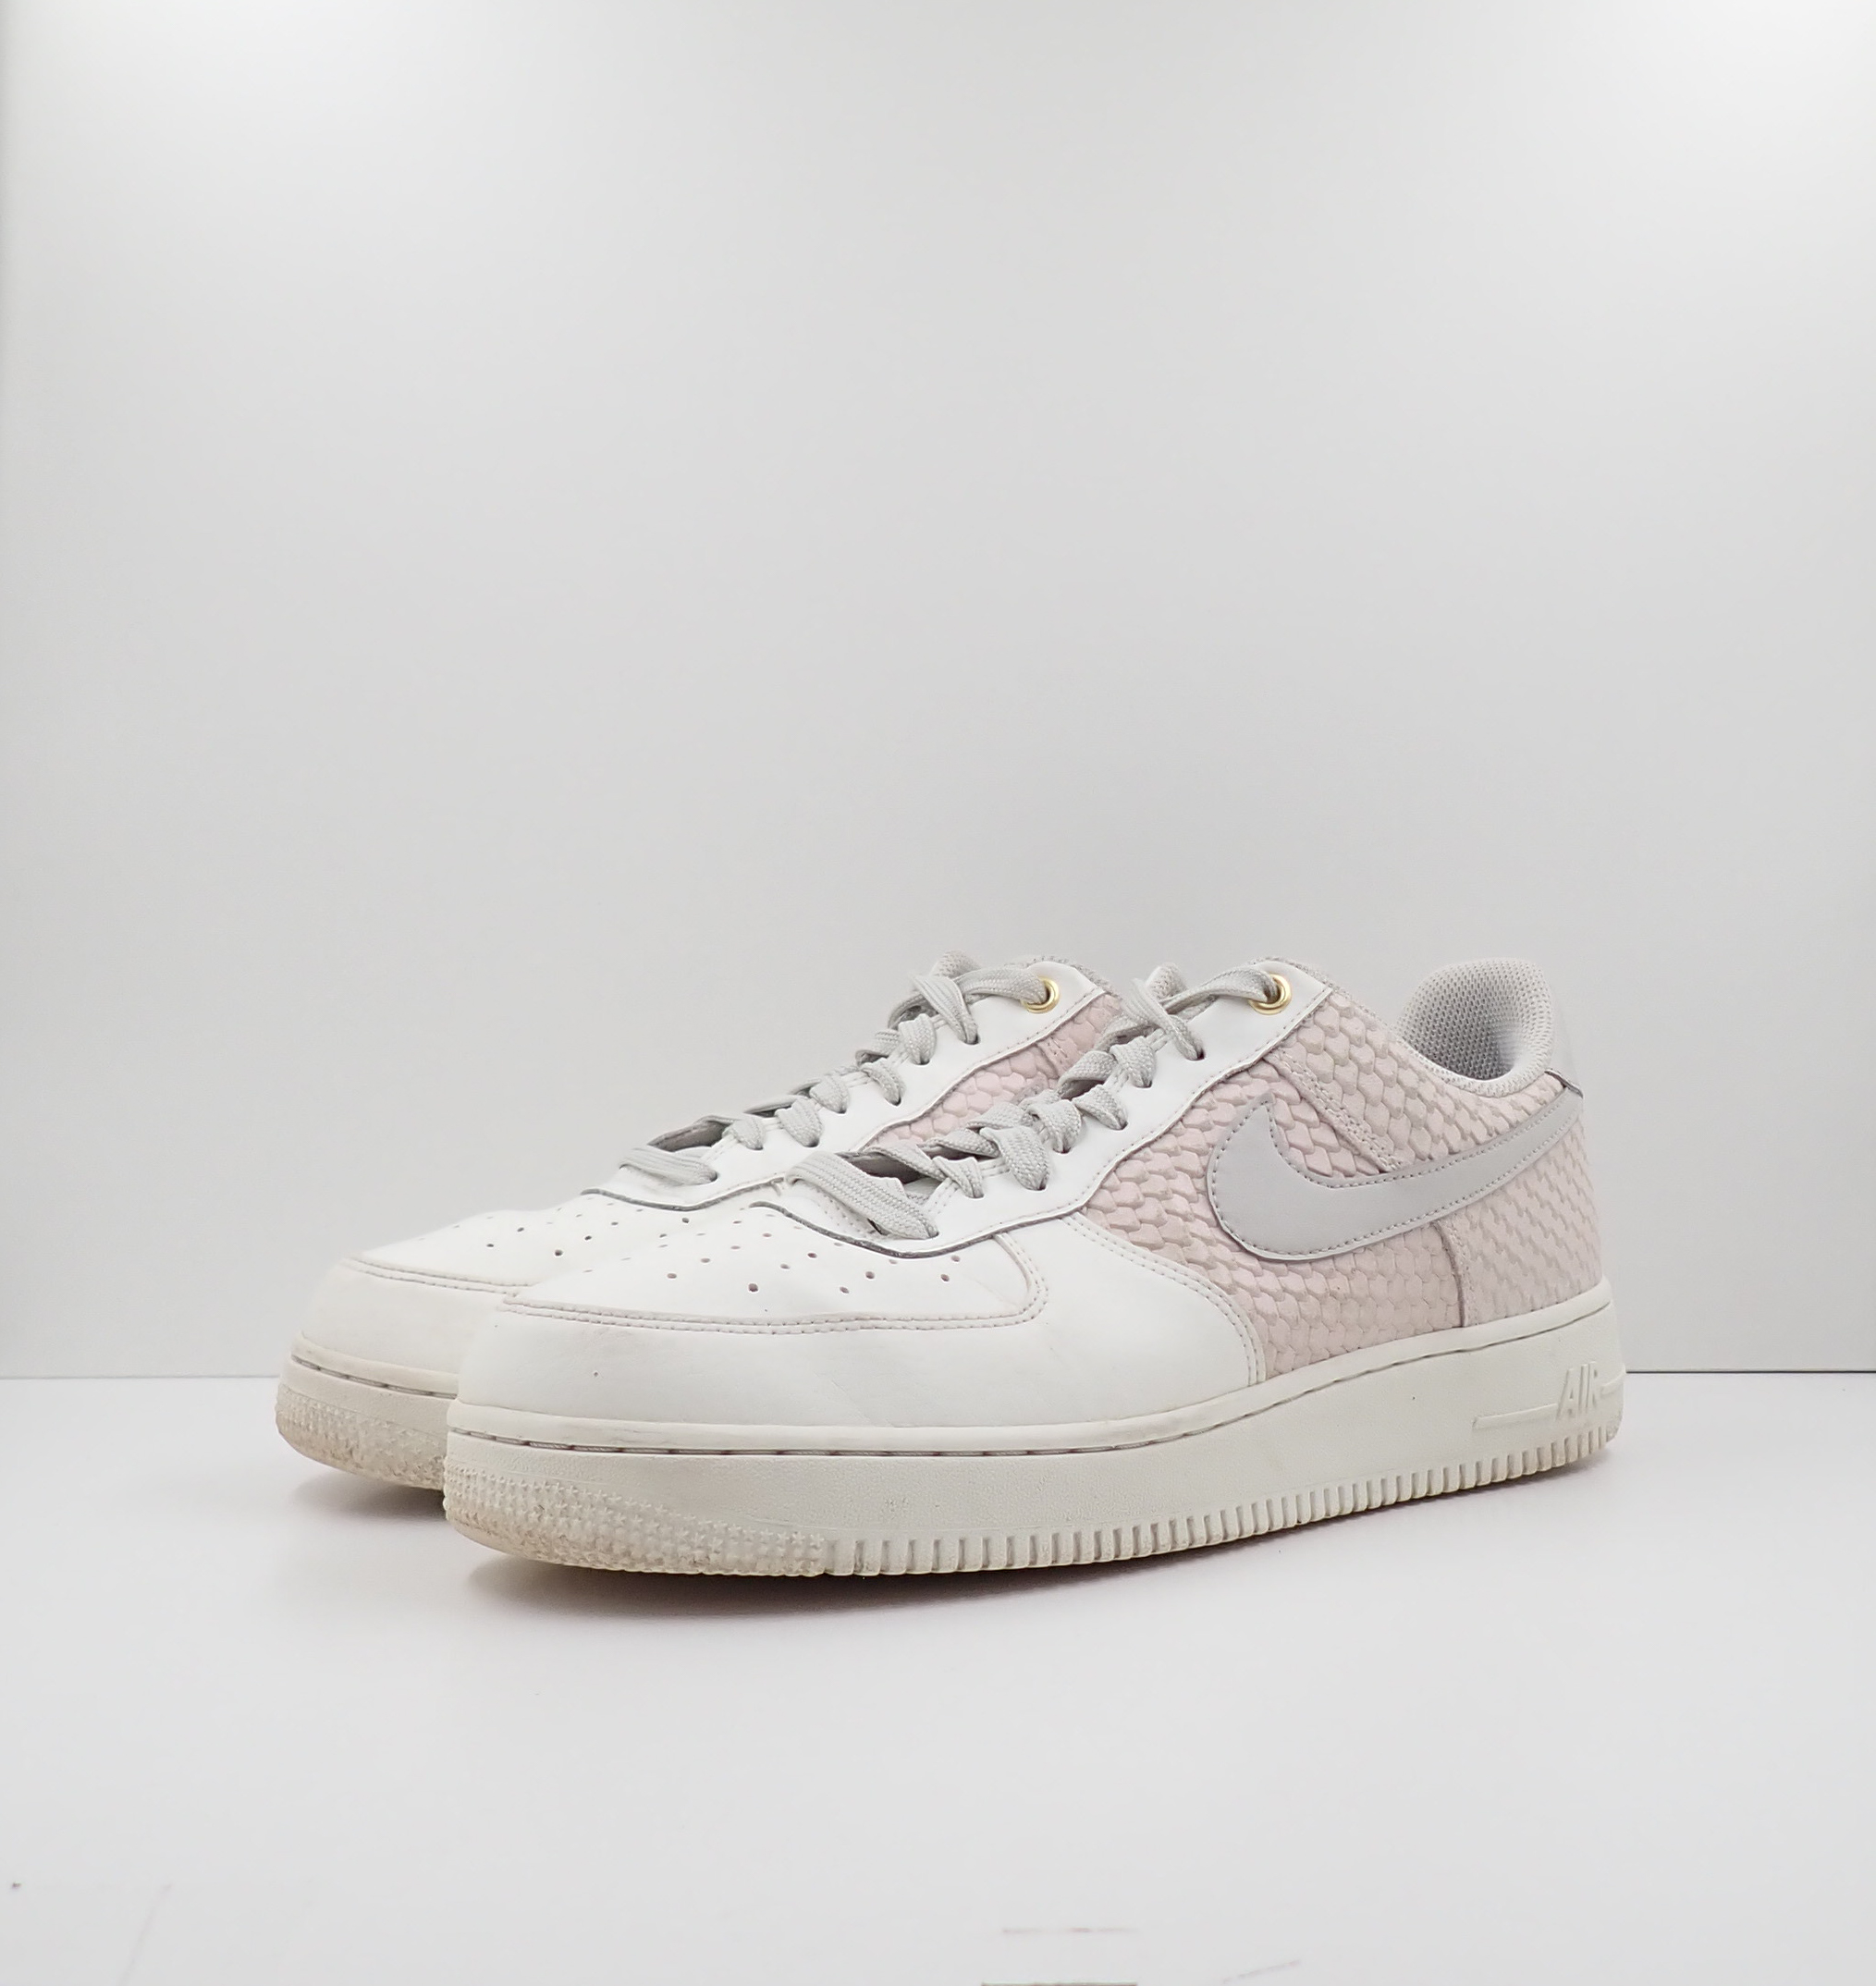 Nike Air Force 1 Low '07 LV8 Sail Light Bone